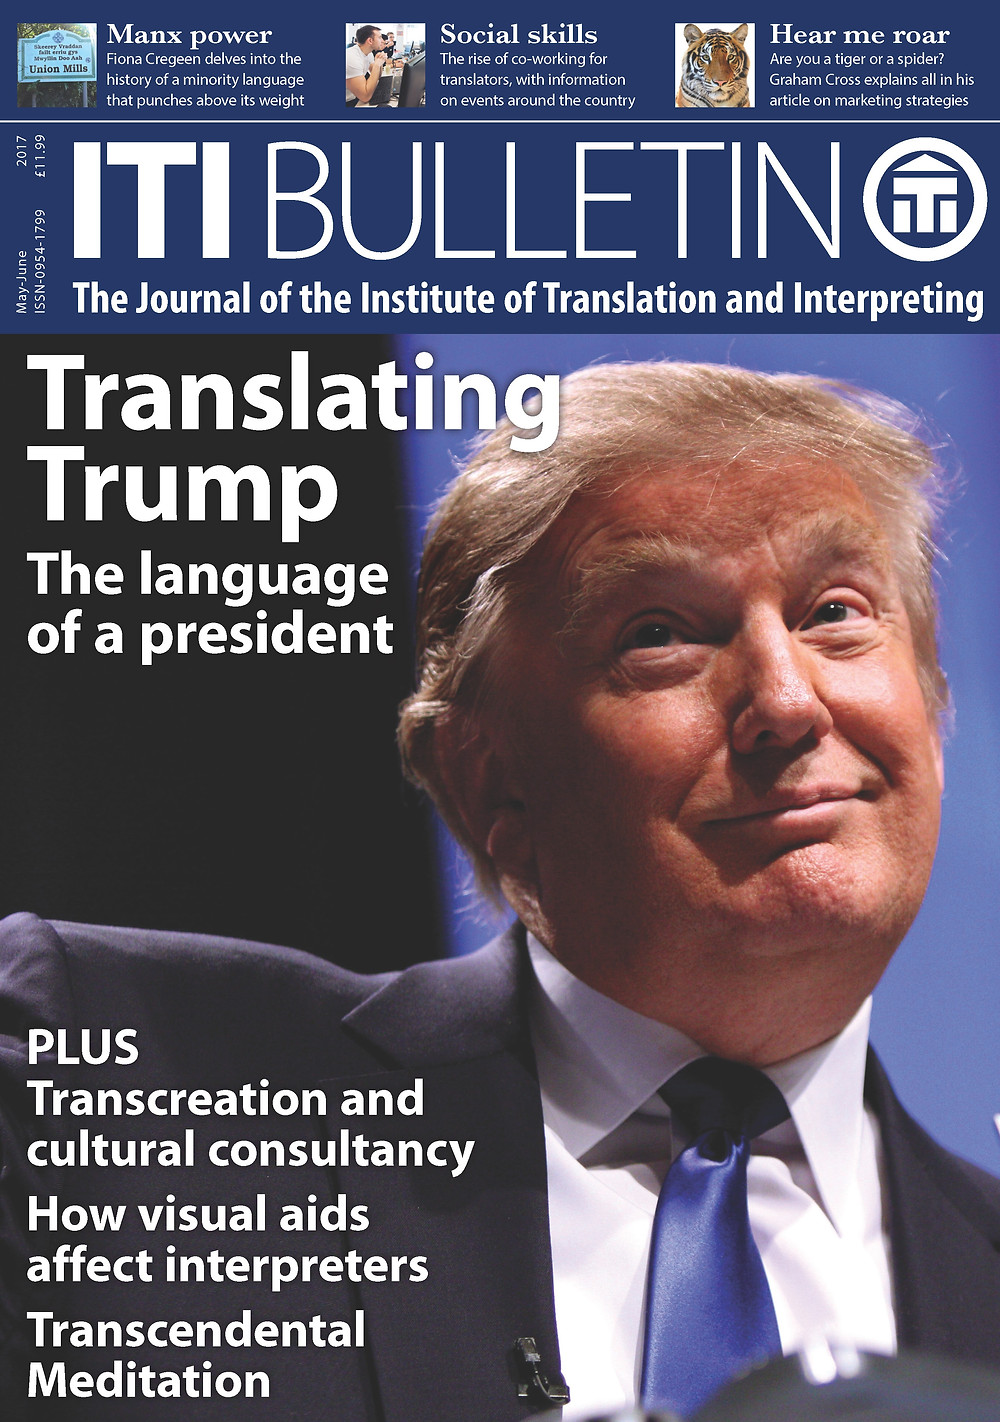 What challenges does the language of Donald Trump pose for translators and interpreters?